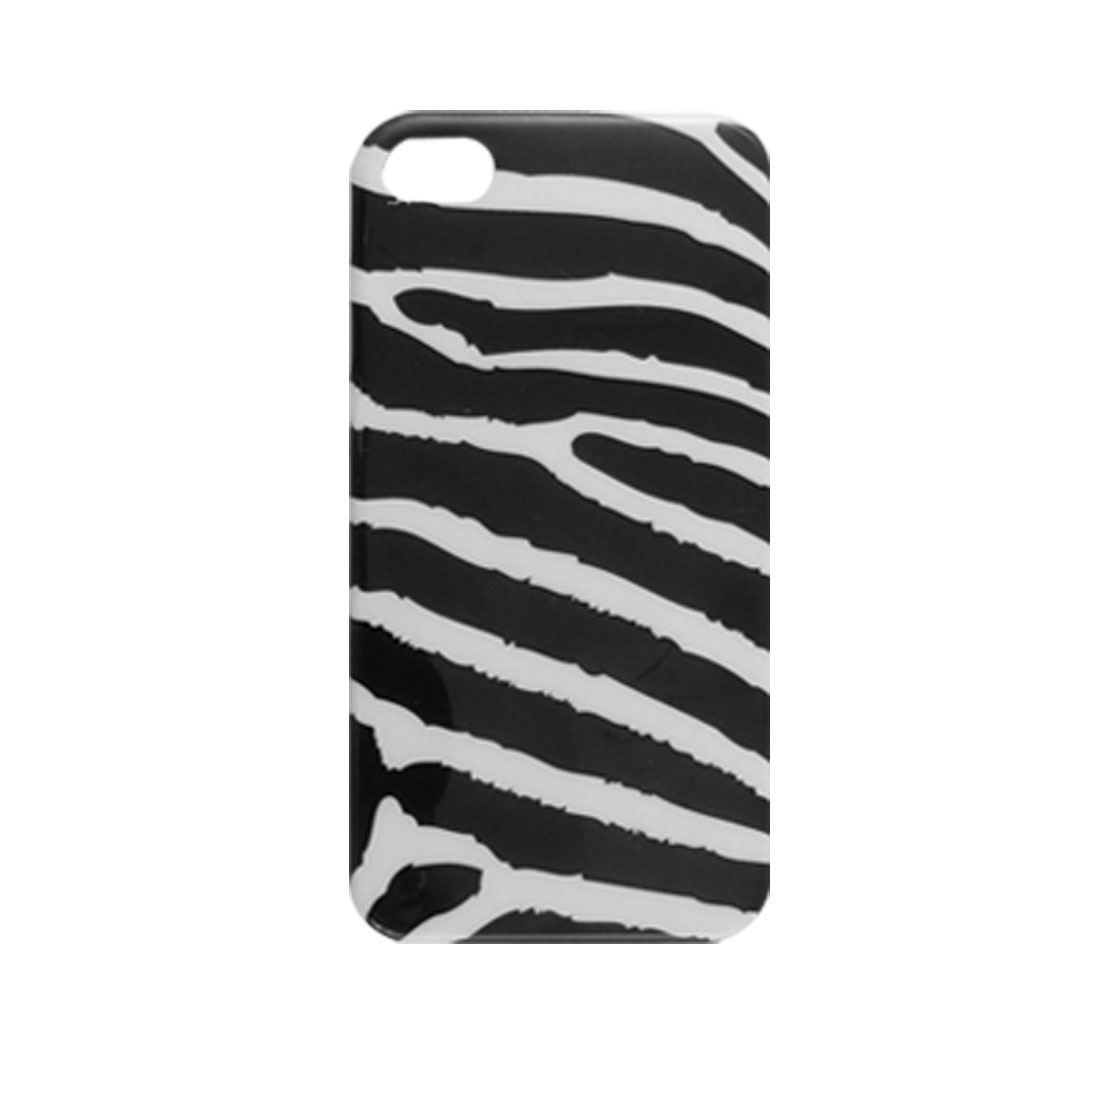 Black White IMD Zebra Print Plastic Cover for iPhone 4 4G 4S